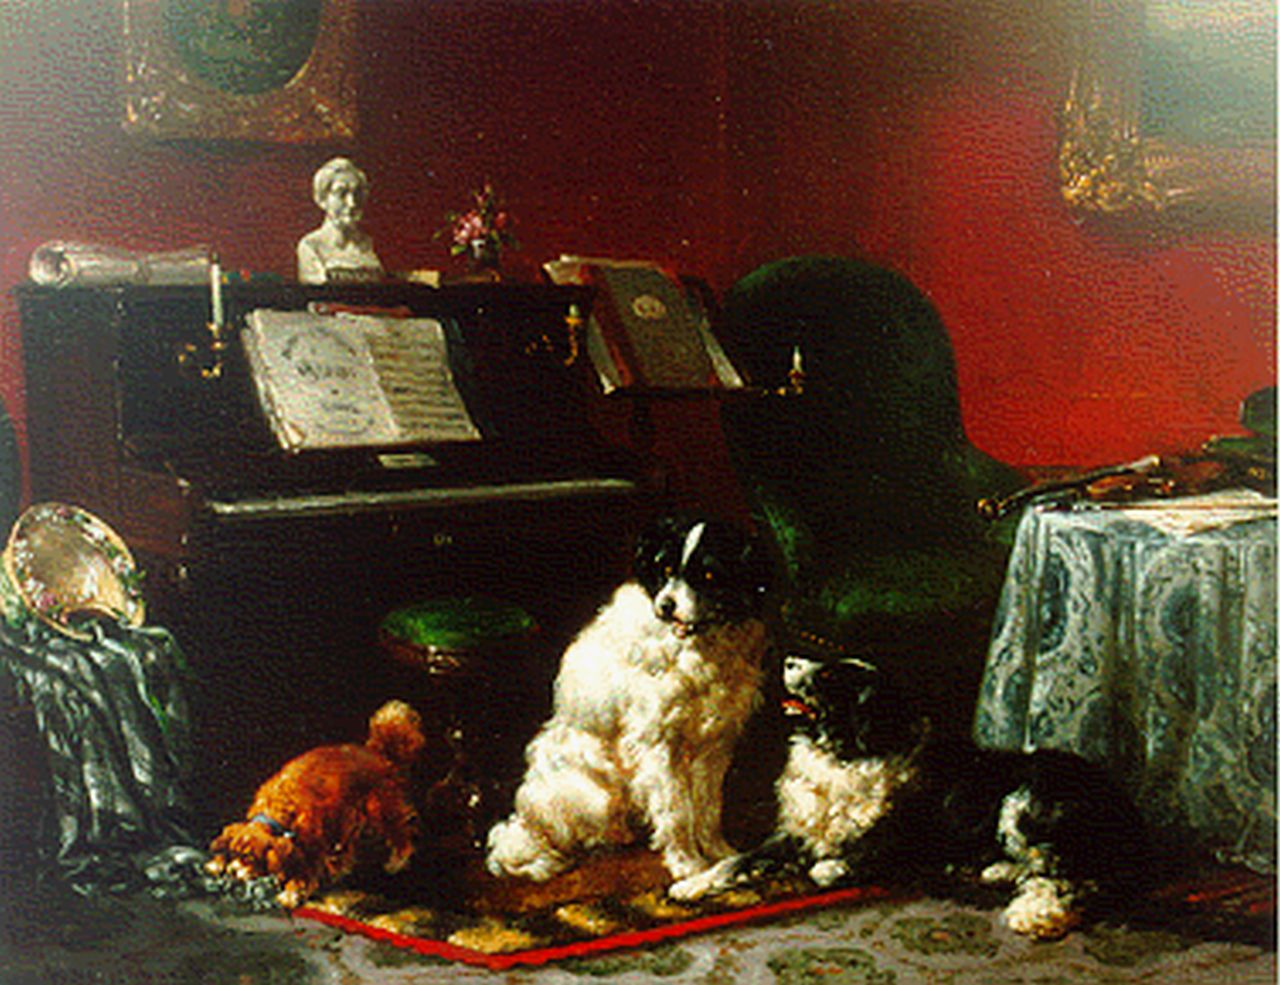 Verschuur W.  | Wouterus Verschuur, Piece of music, oil on panel 19.5 x 24.8 cm, signed l.l.